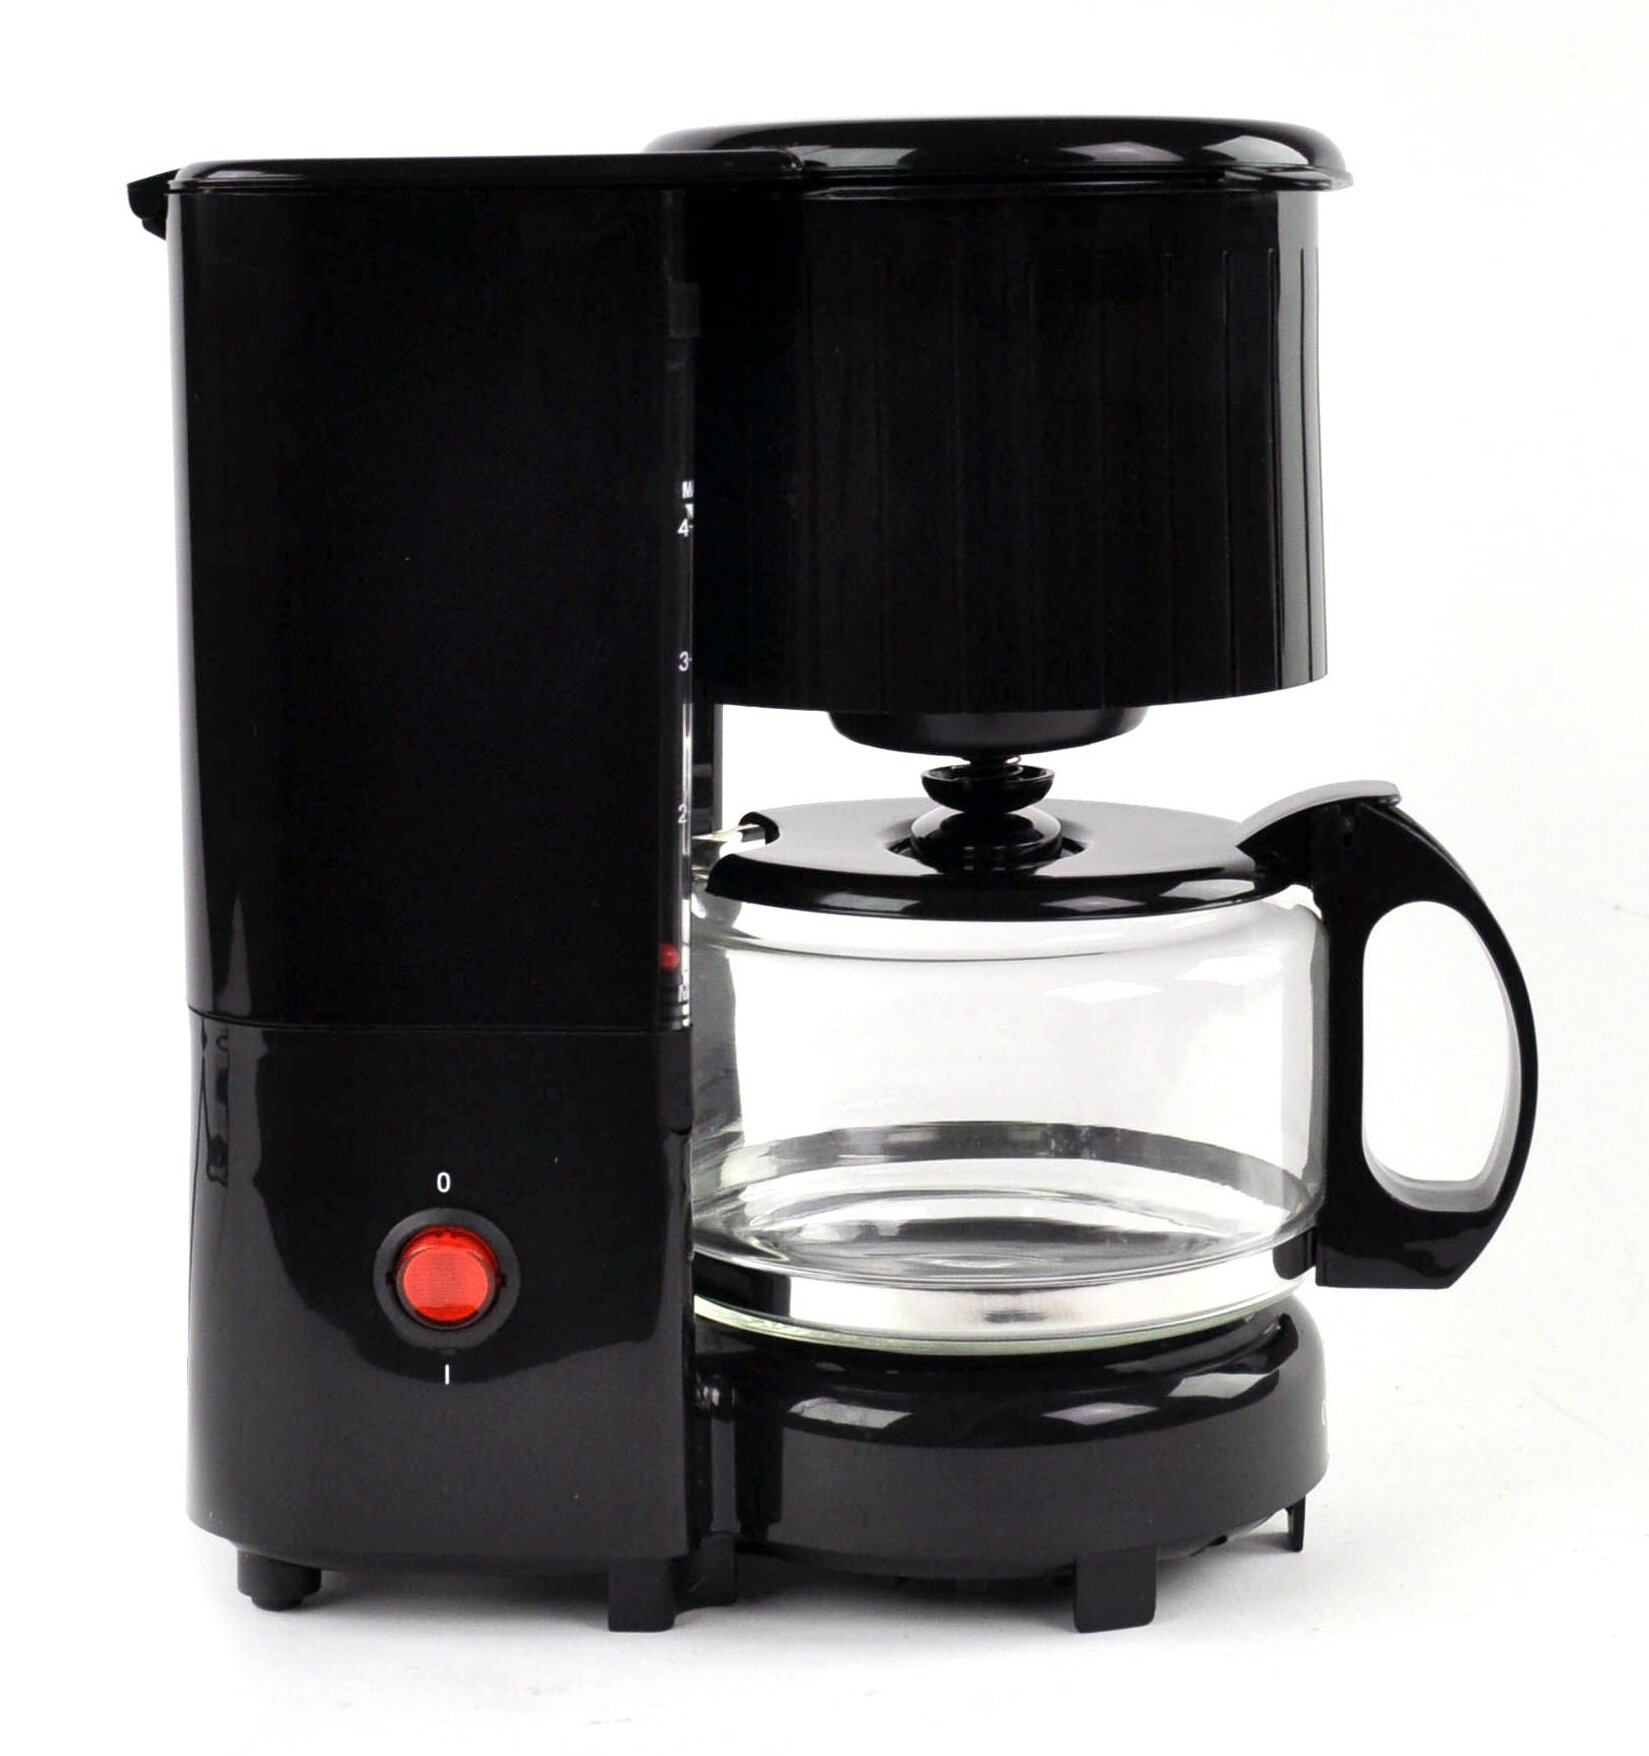 Cookinex 4 Cup Anti Drip Coffee Maker Ebay